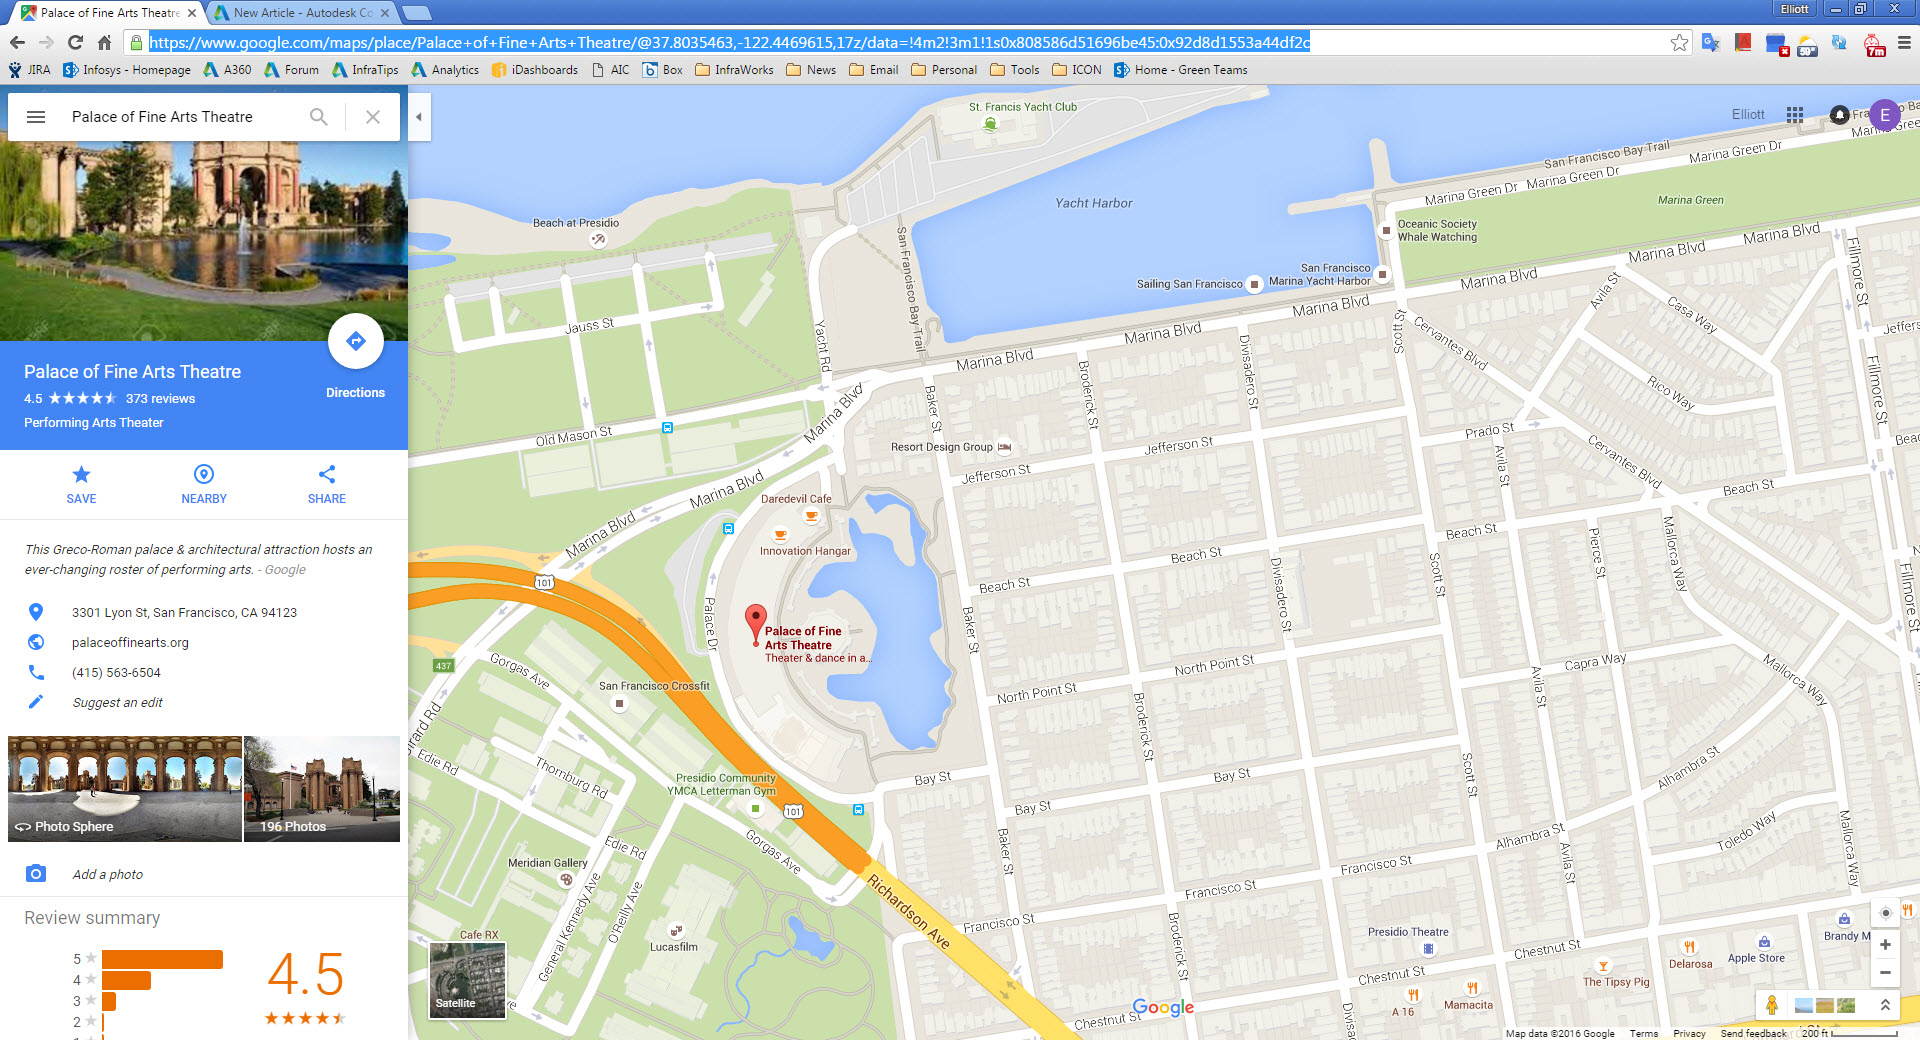 Add Google Maps to Any Feature and Use it Inside of ... on topographic maps, aerial maps, waze maps, android maps, iphone maps, stanford university maps, search maps, gogole maps, msn maps, online maps, bing maps, ipad maps, amazon fire phone maps, googie maps, microsoft maps, googlr maps, road map usa states maps, aeronautical maps, goolge maps, gppgle maps,